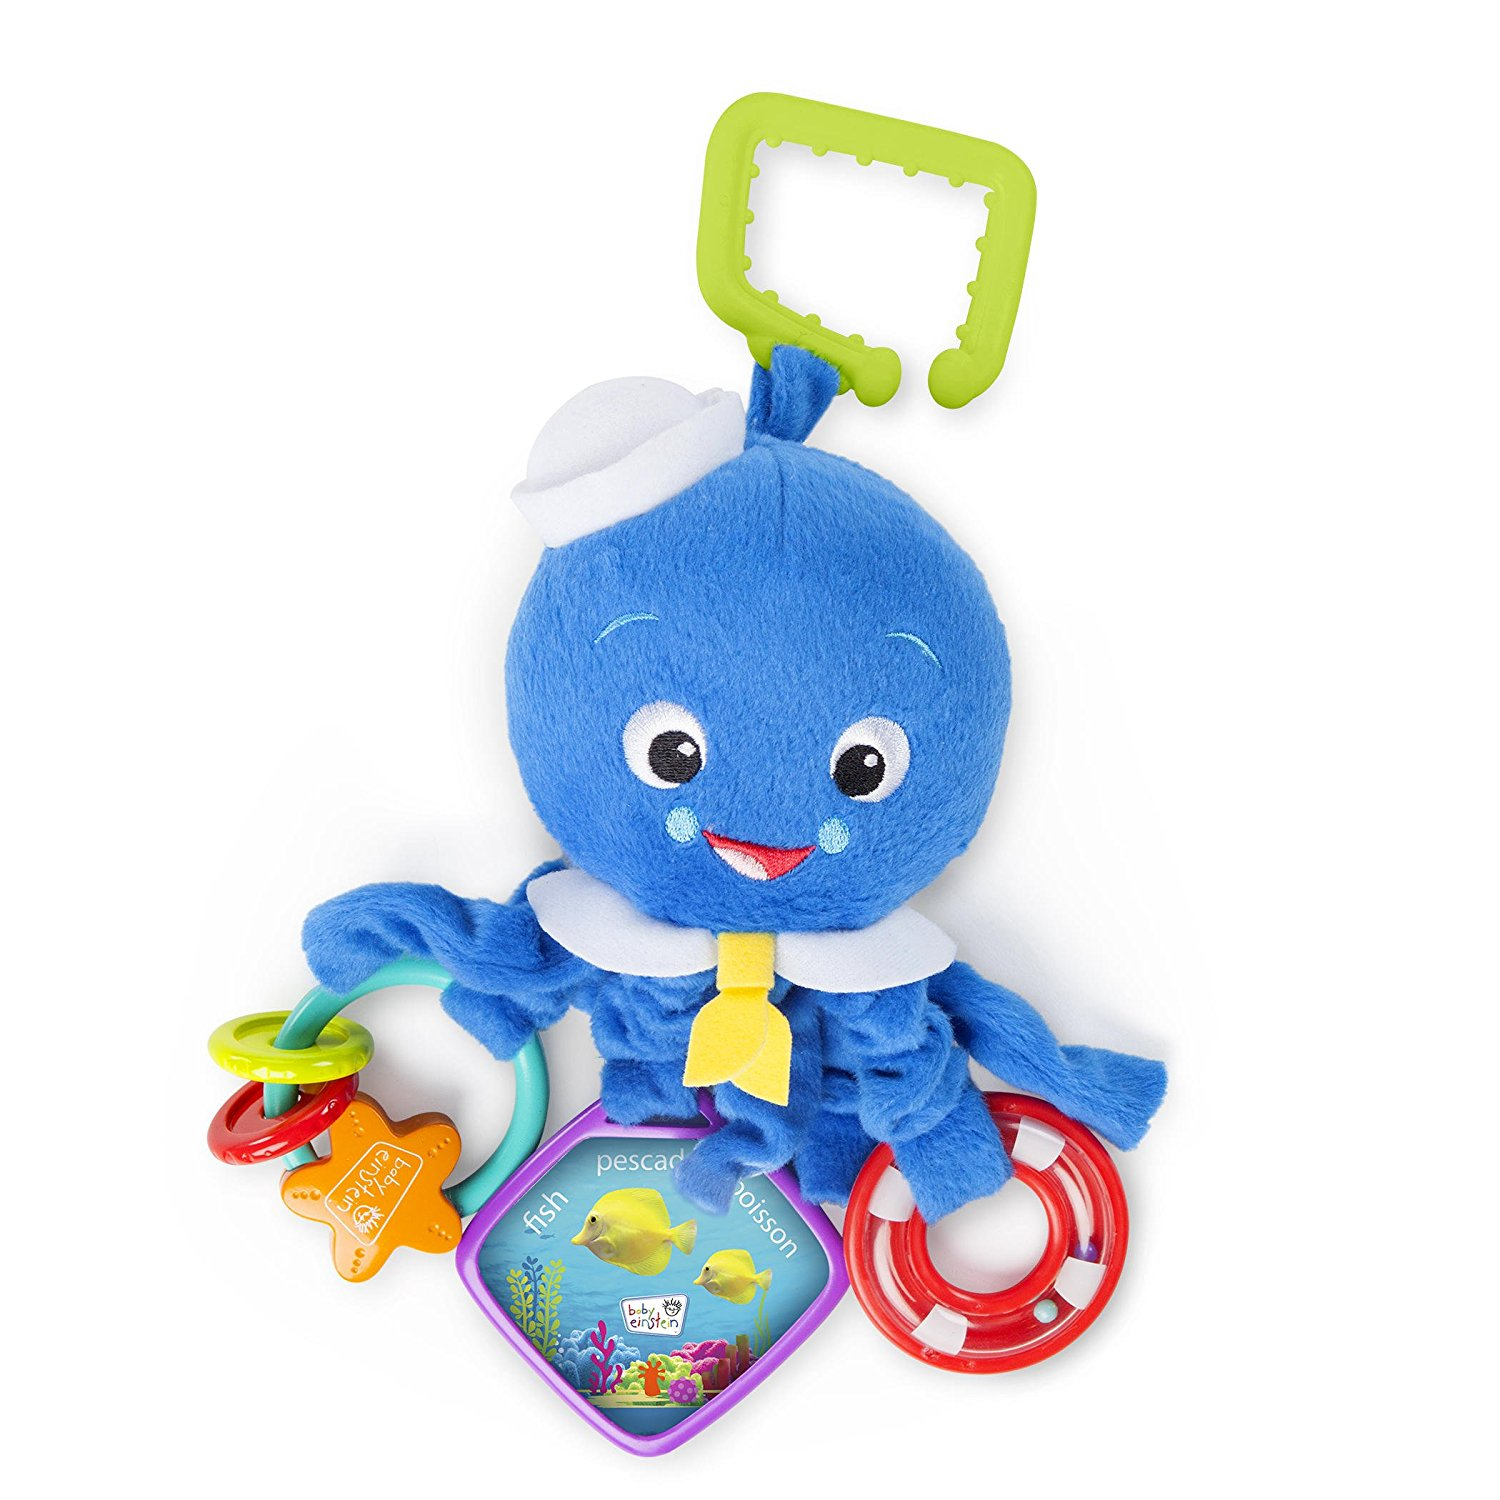 Baby Einstein Fun Multi-Sensory Stimulation Activity Arms Octopus Infant Rattle